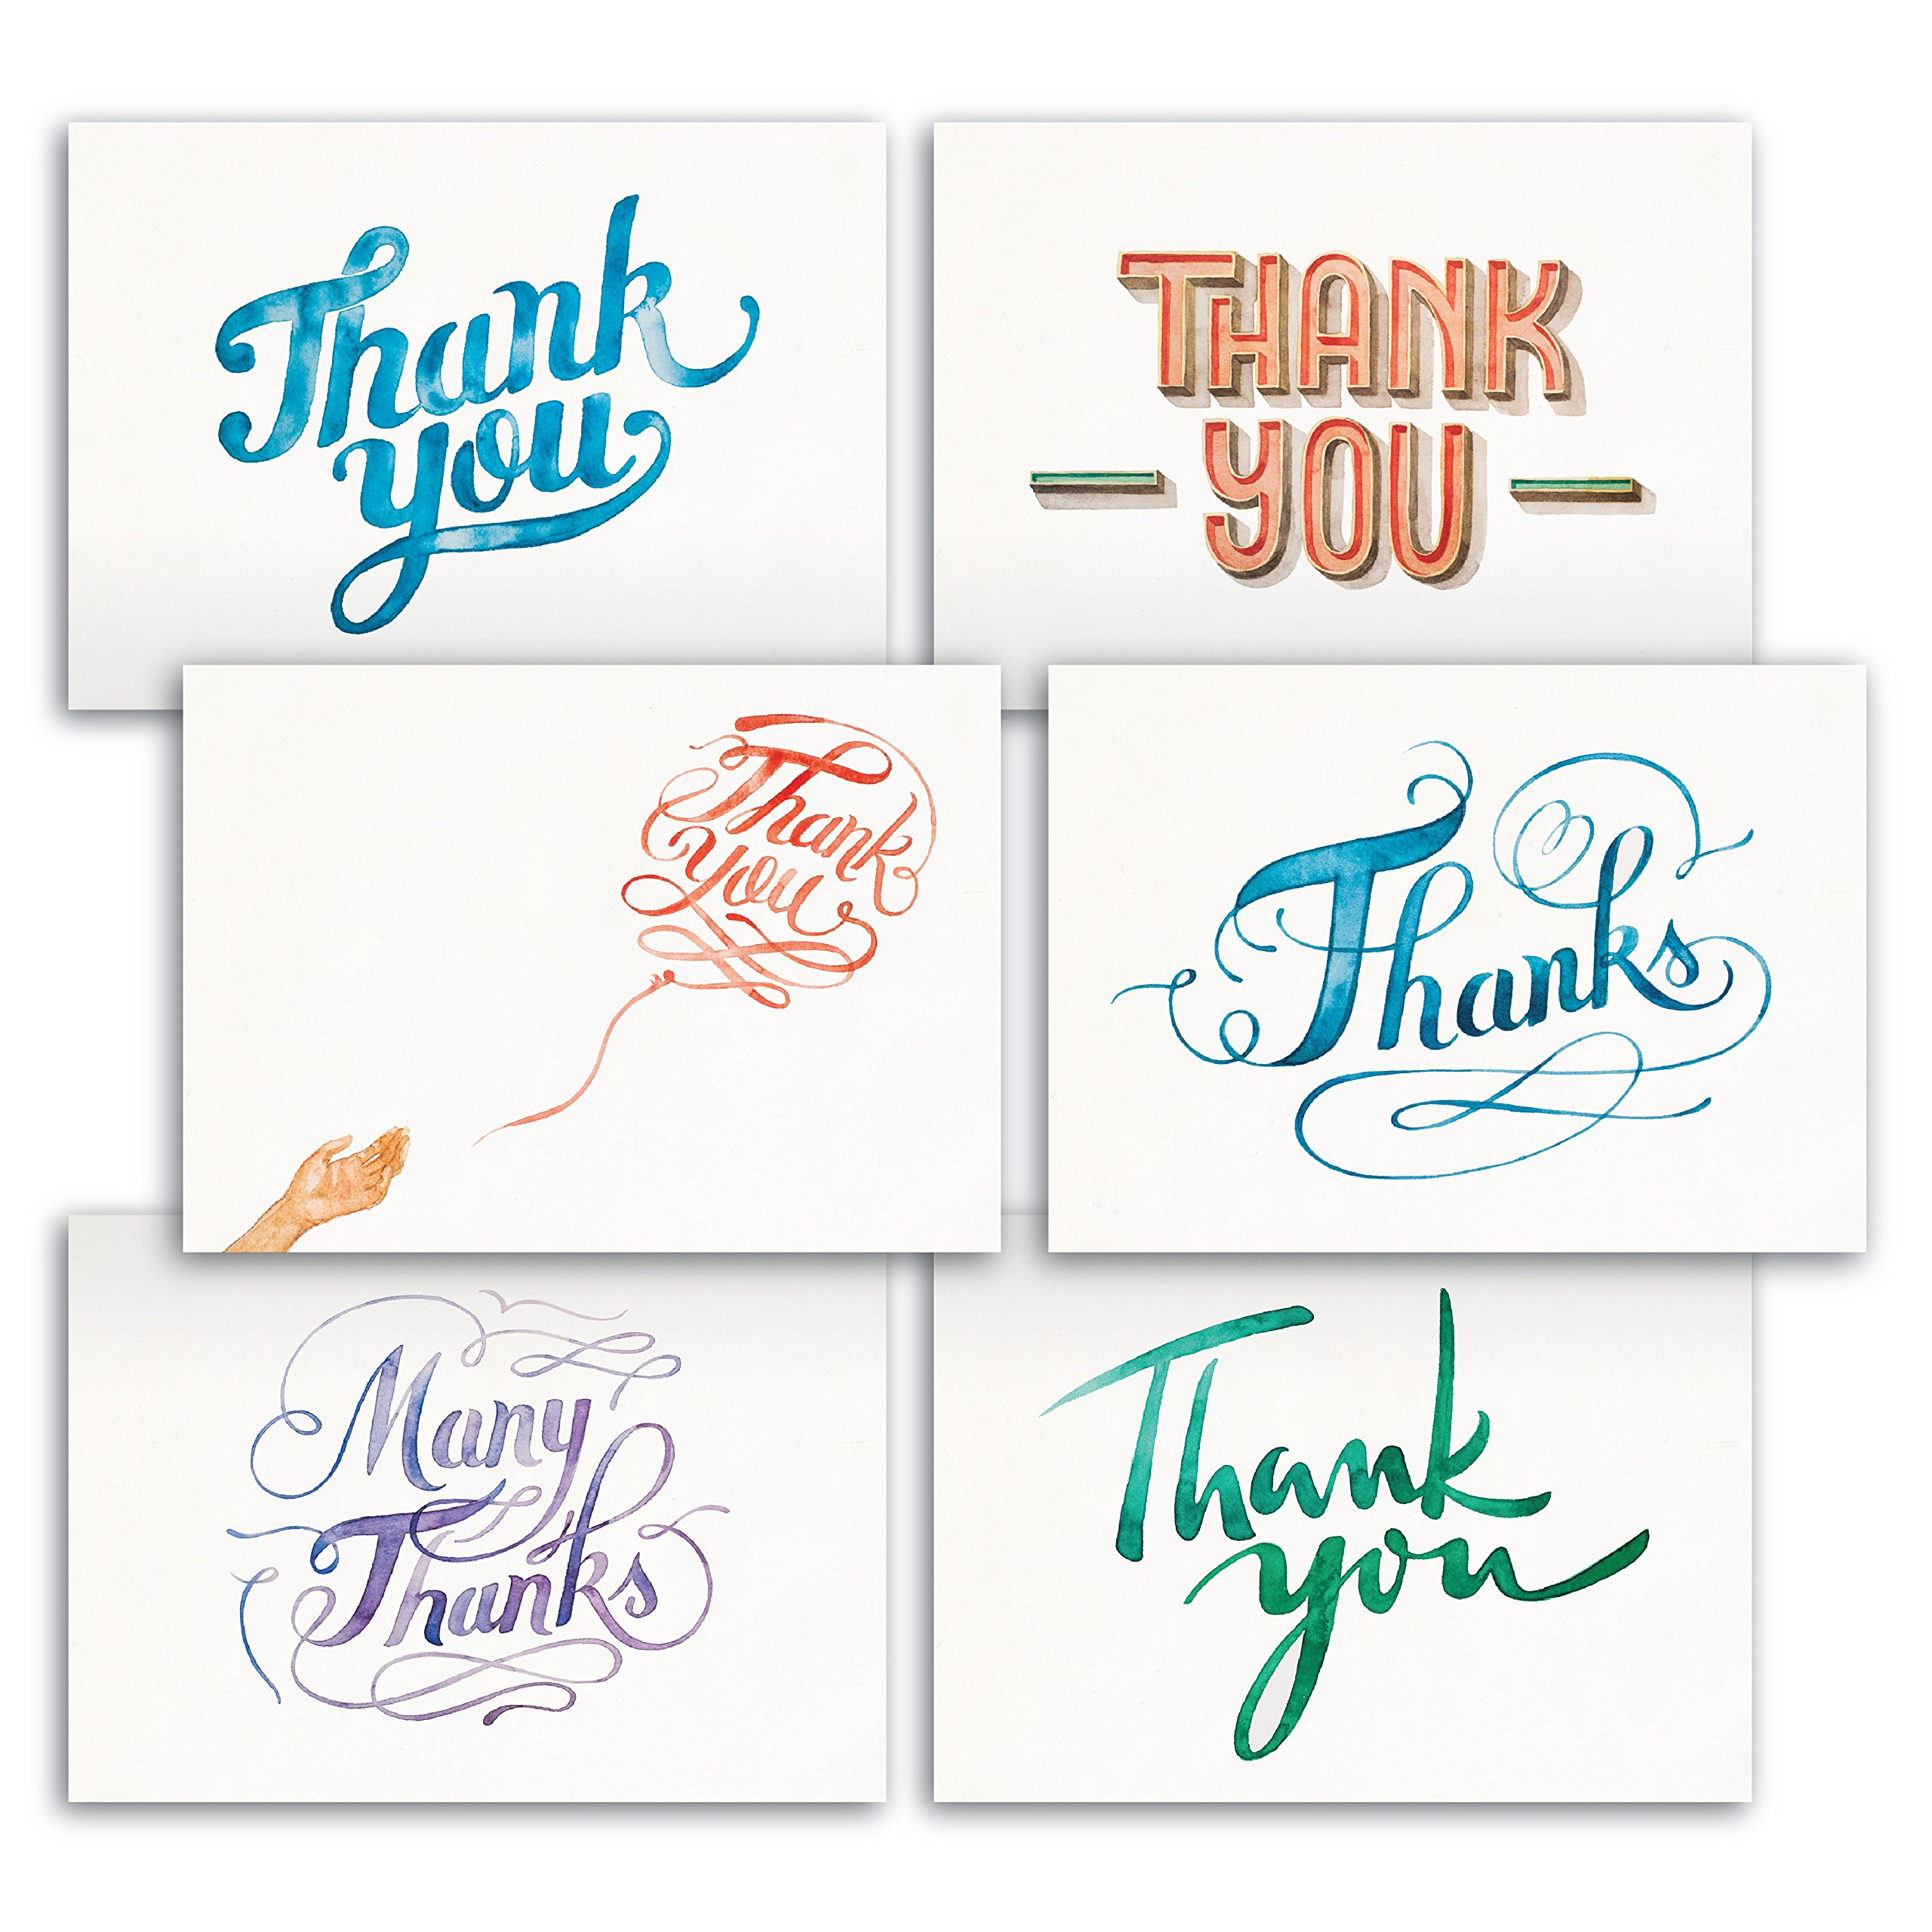 Hand Painted Watercolor Thank You Note Cards 48 Bulk - Lovely, Like Handmade Cards Box Set - Contains Blank Cards with Envelopes - 6 Special Designs by Papertopia